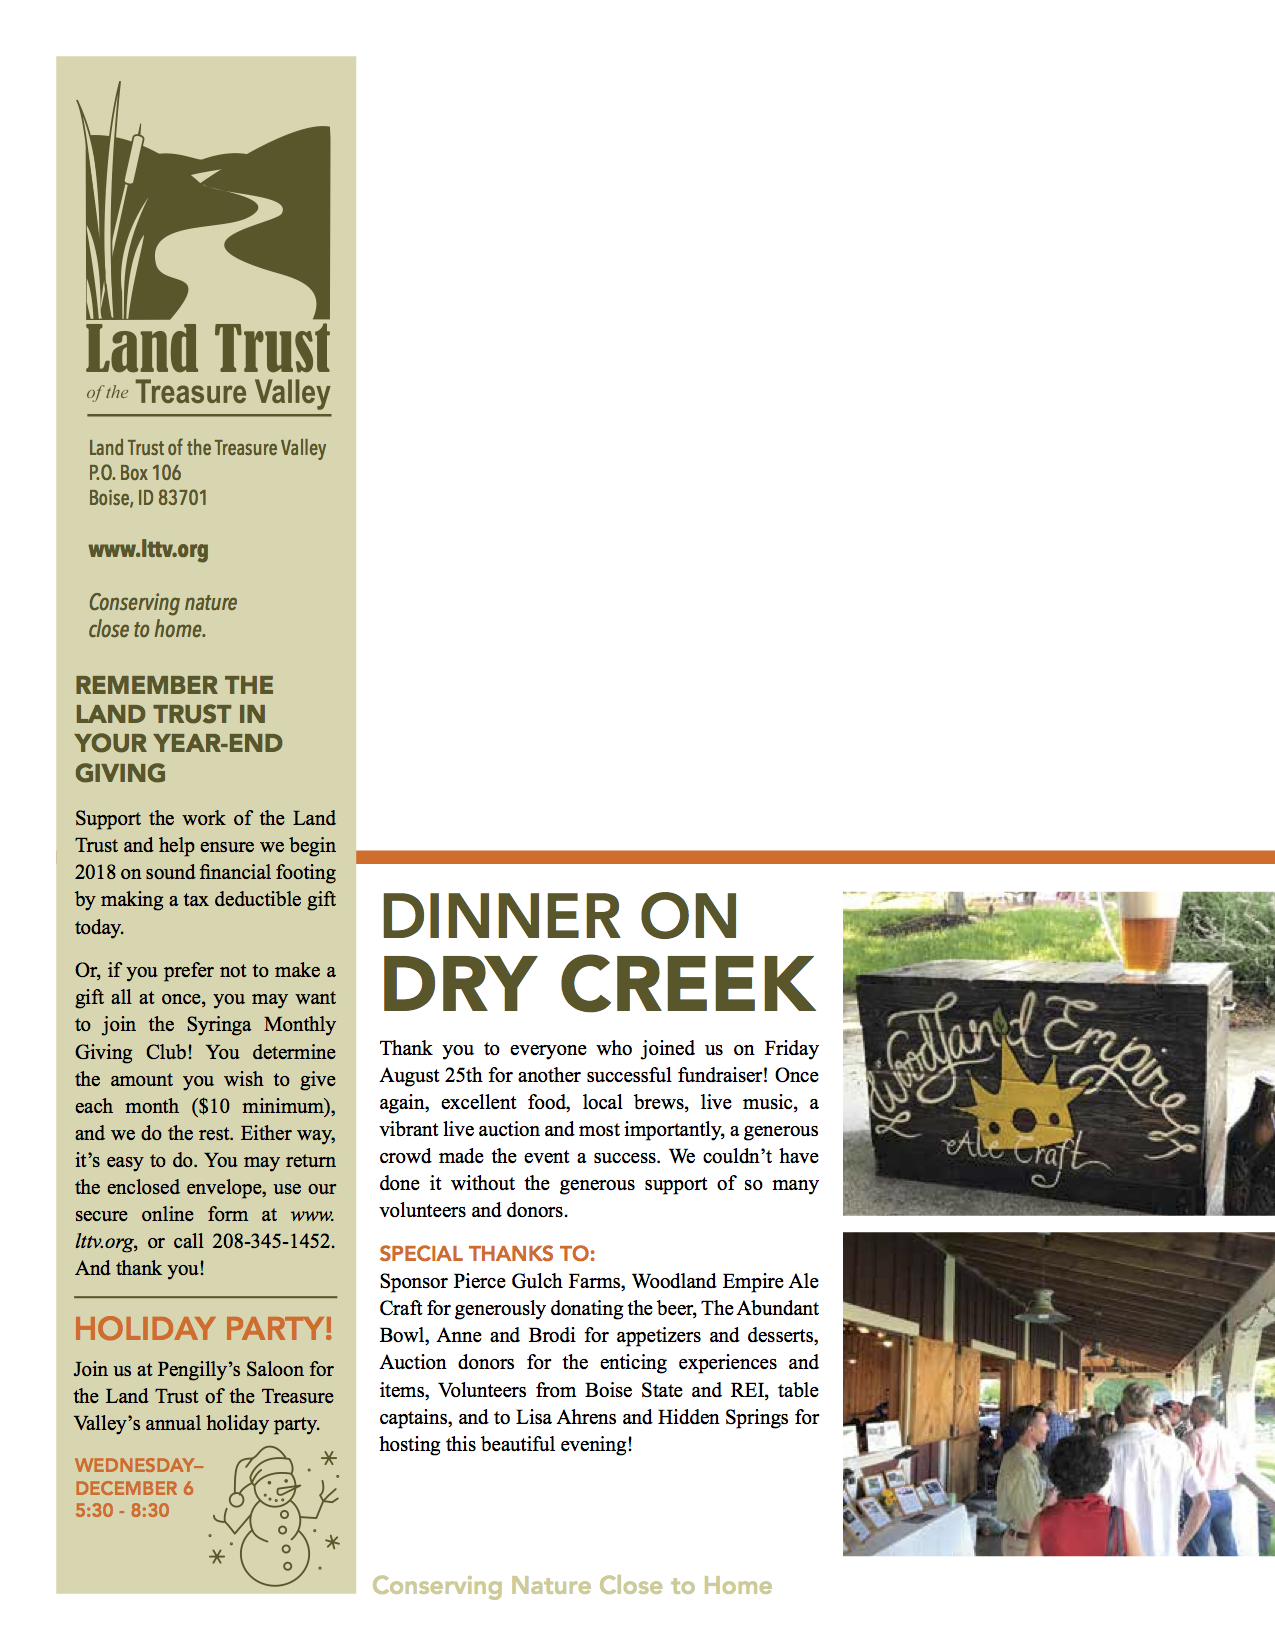 Land Trust_Fall 2017_Newsletter_page4.png